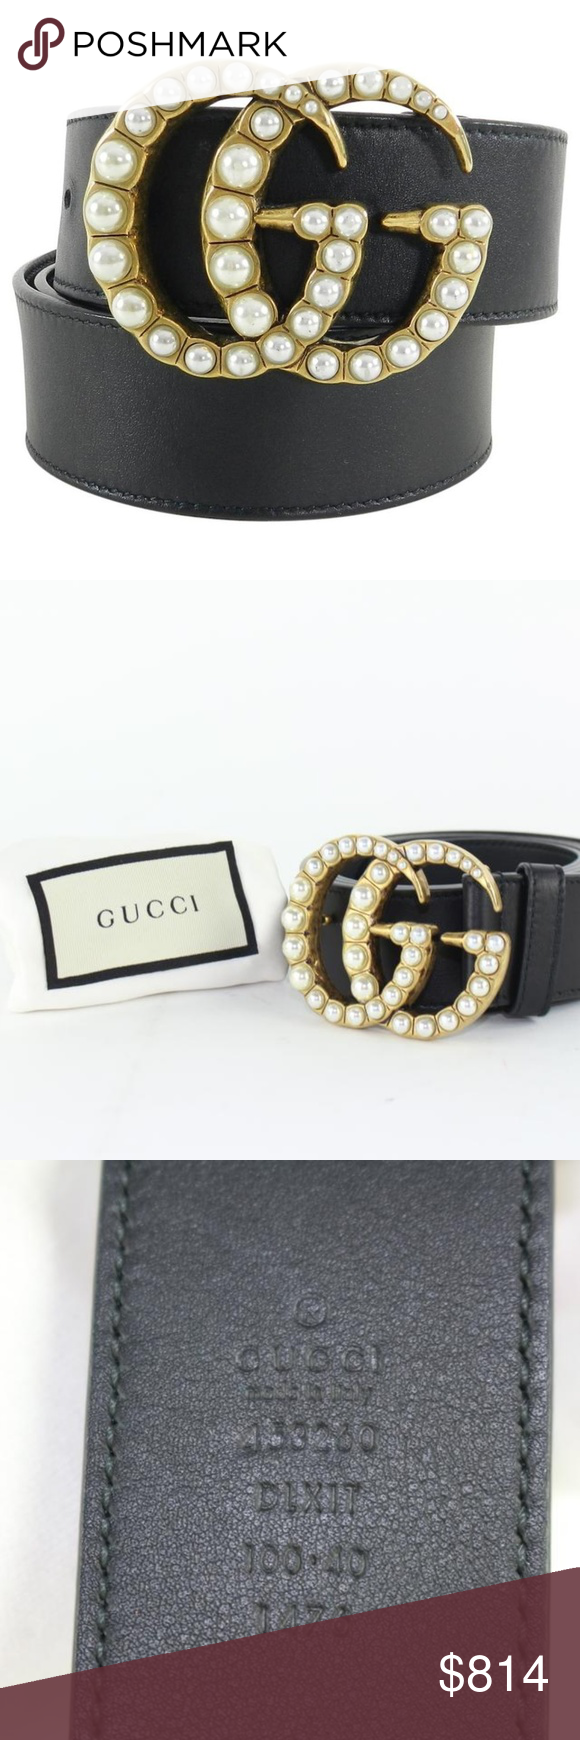 7e278c779e19 Gucci Rare Limited Pearly Marmont Pearl GG Belt Date Code/Serial Number:  453260 Made